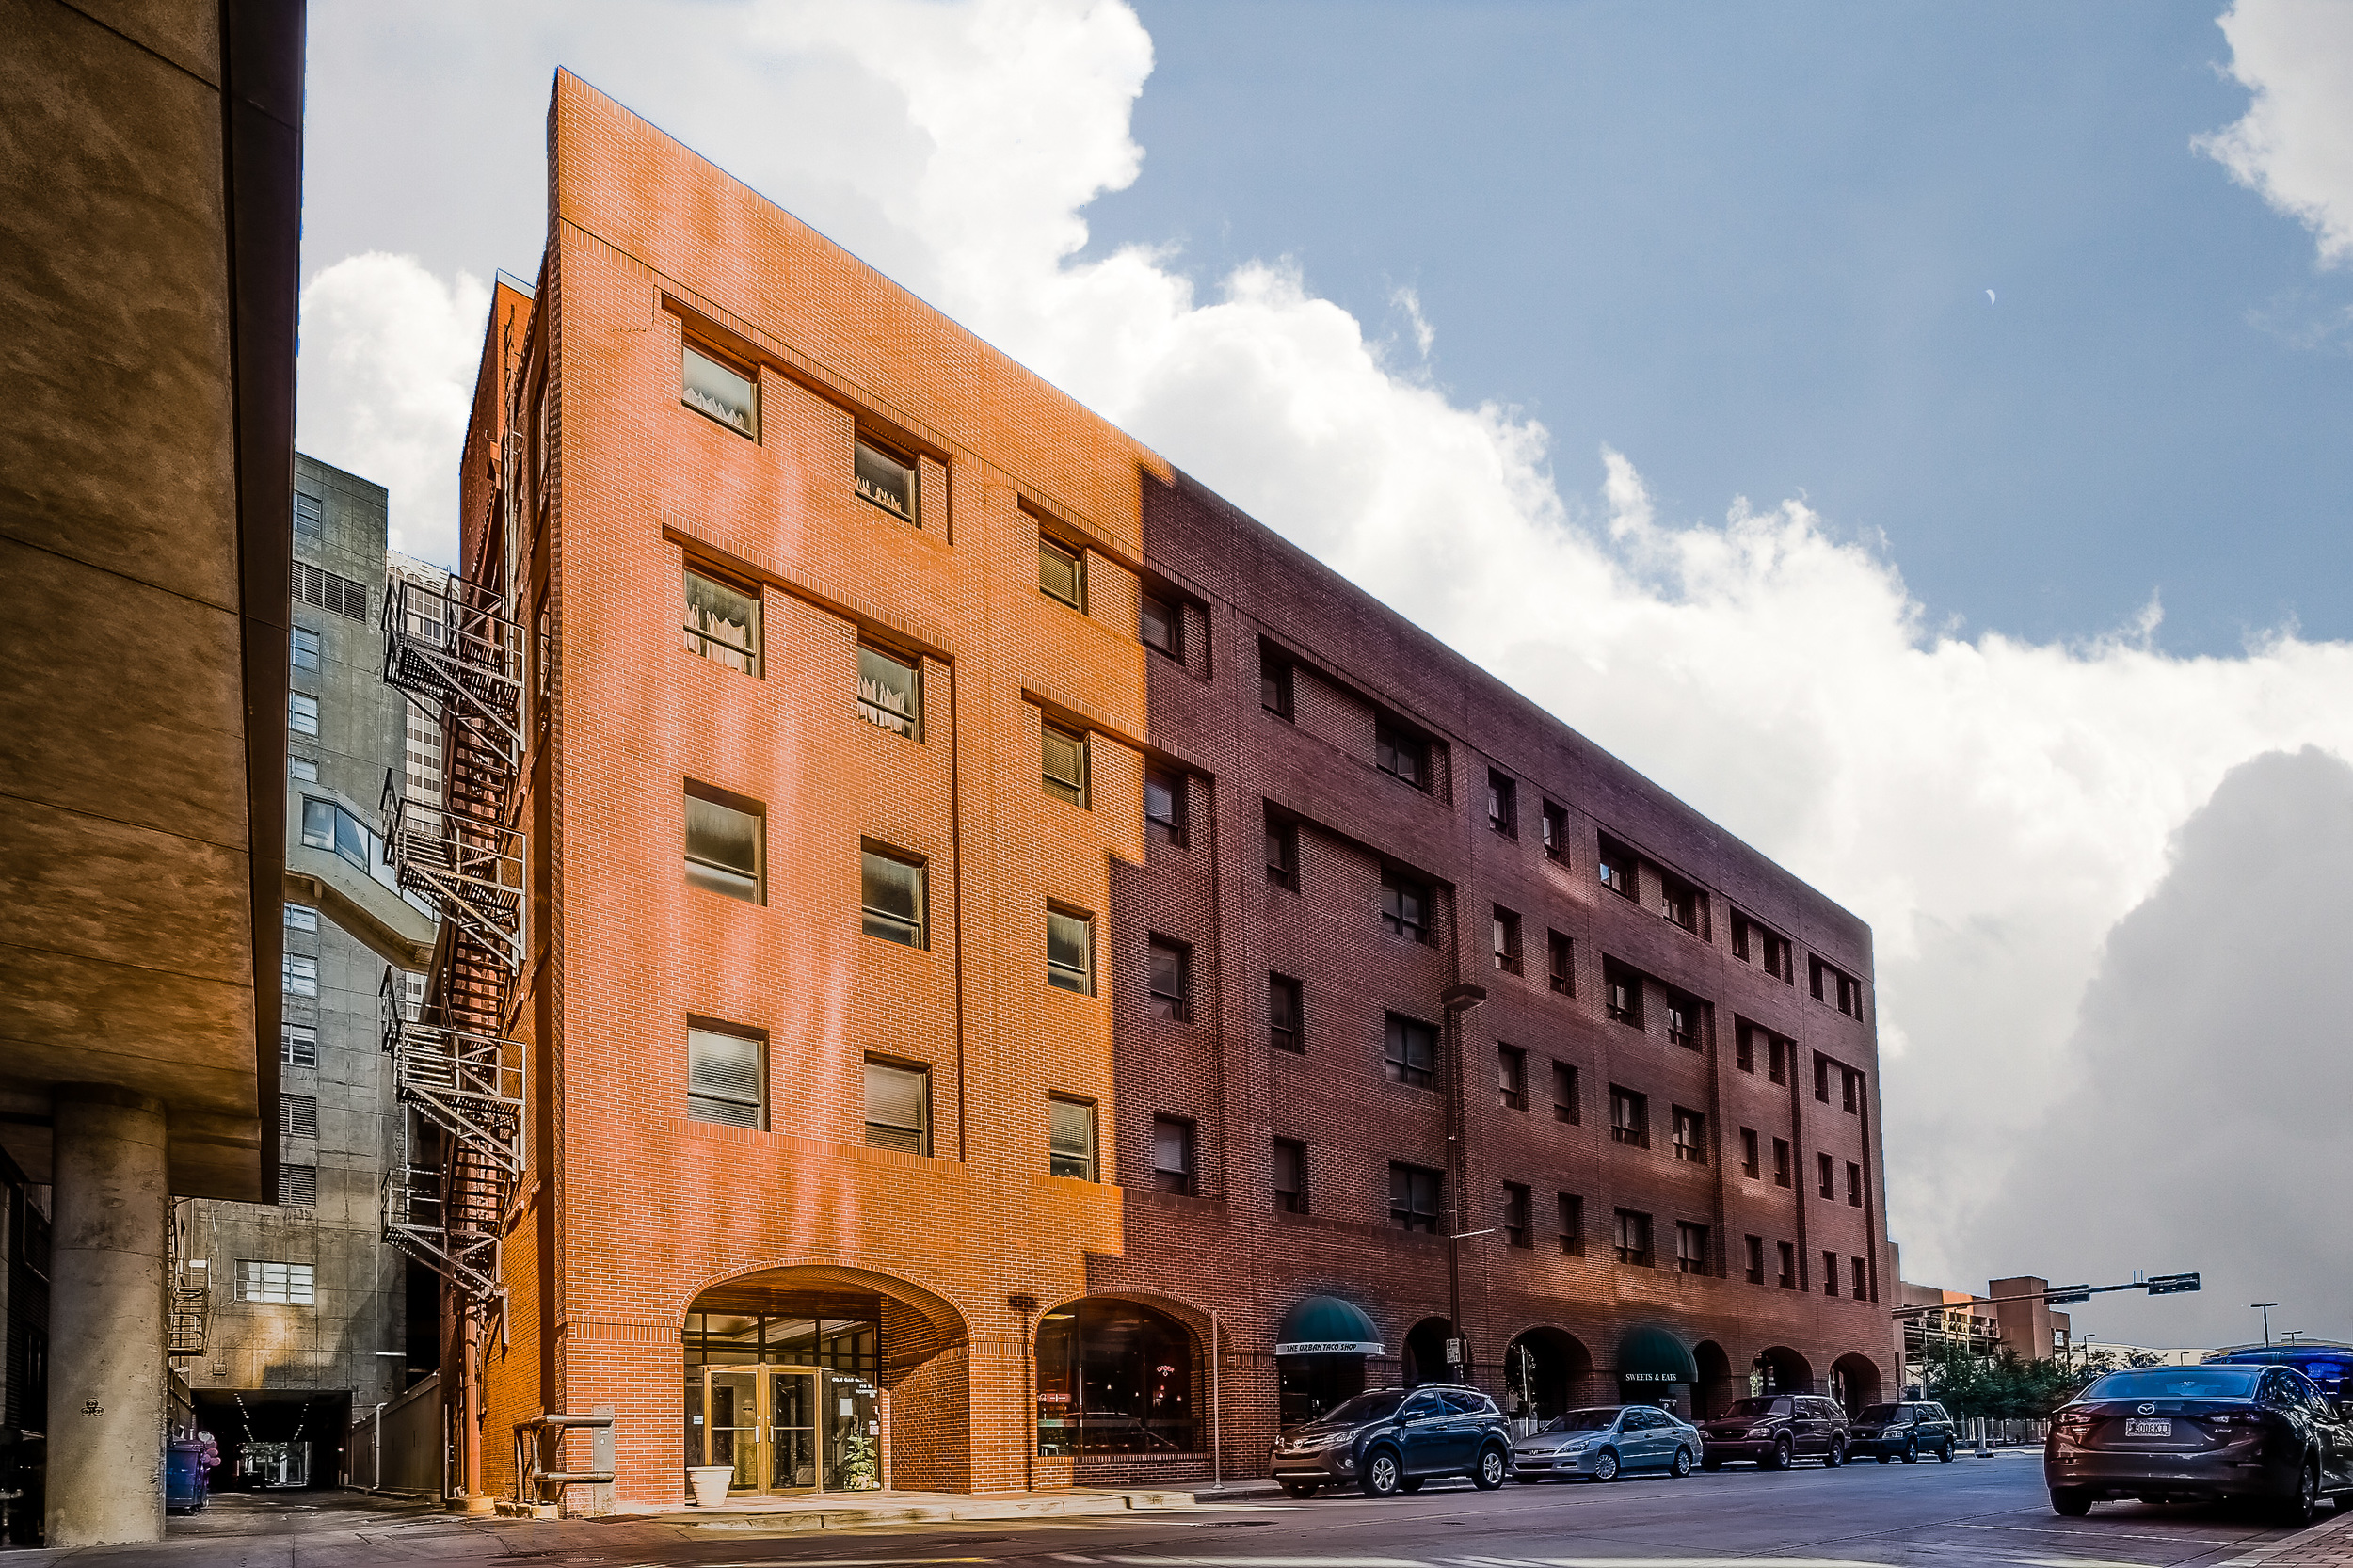 An as yet unnamed building at Main and Robinson. Not sure if it has a name. But I love the red brick.